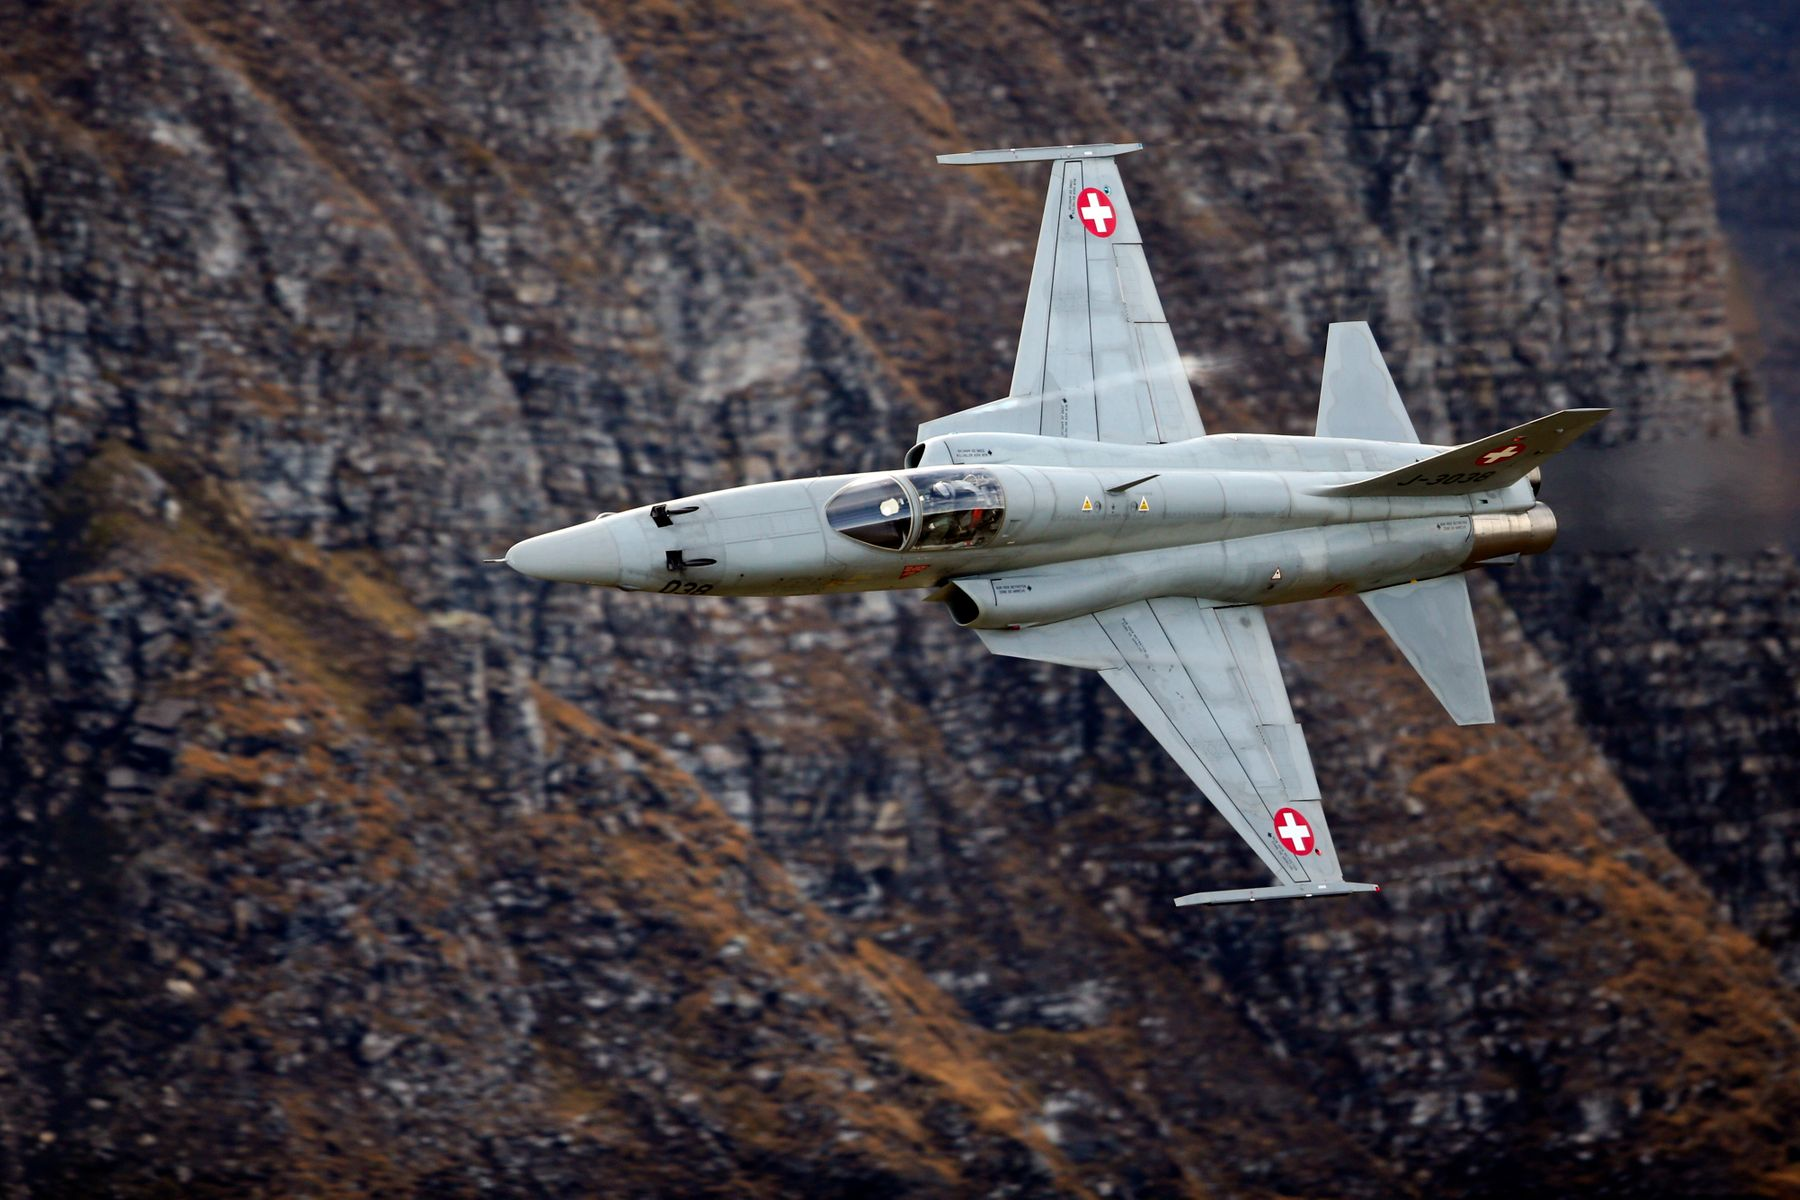 Swiss F-5E [Swiss Armed Forces/Philipp Schmidli]